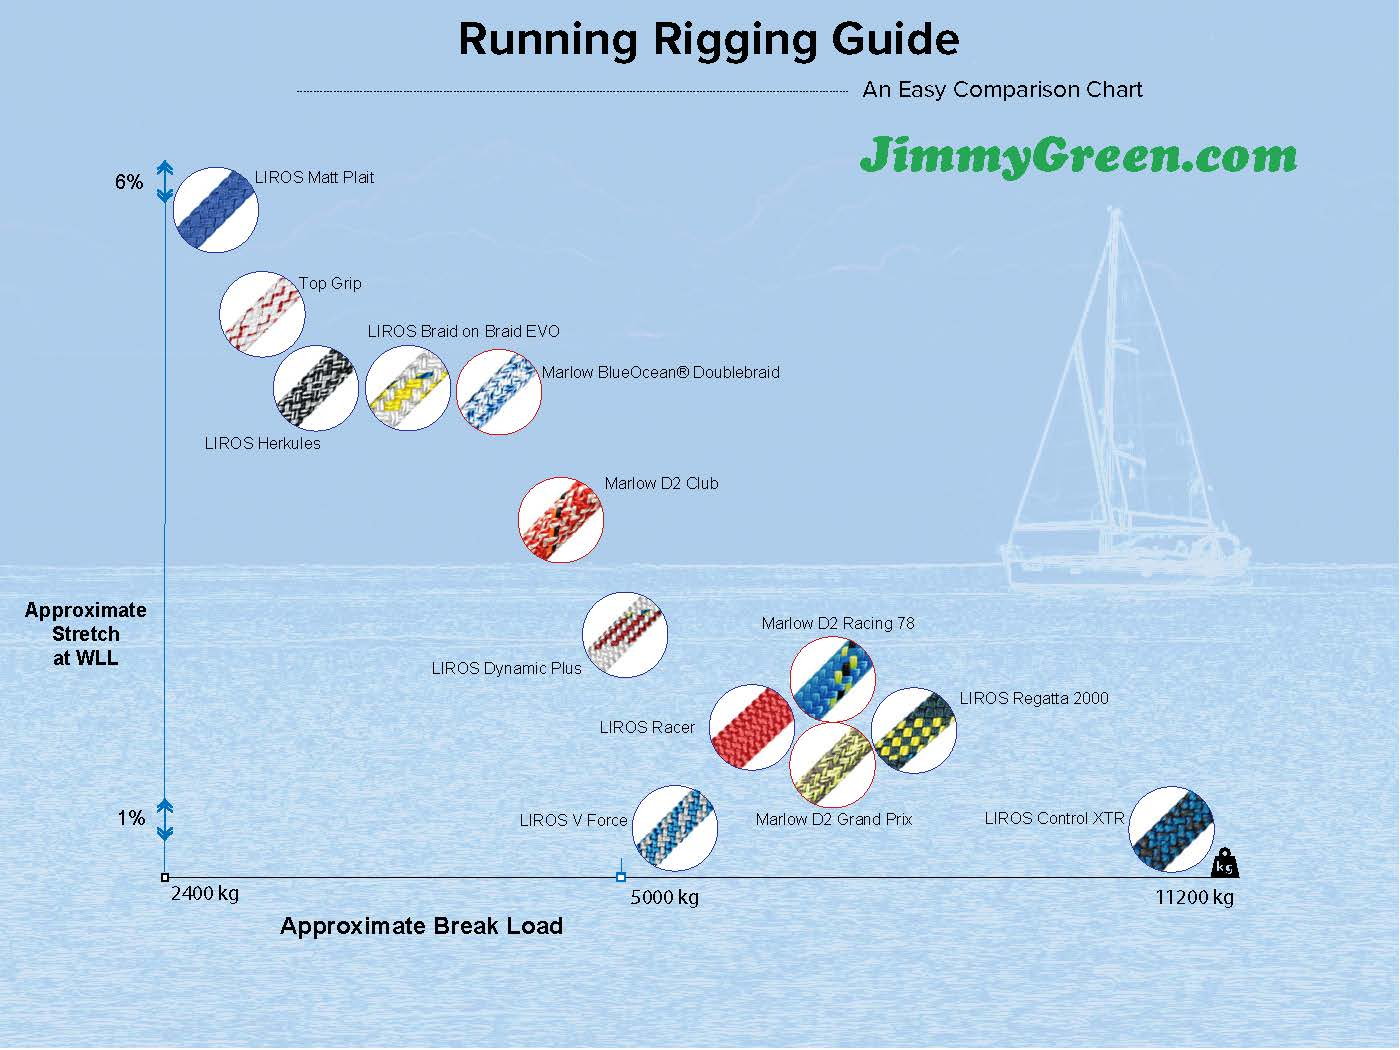 Running Rigging Guide- An Easy Comparison Chart